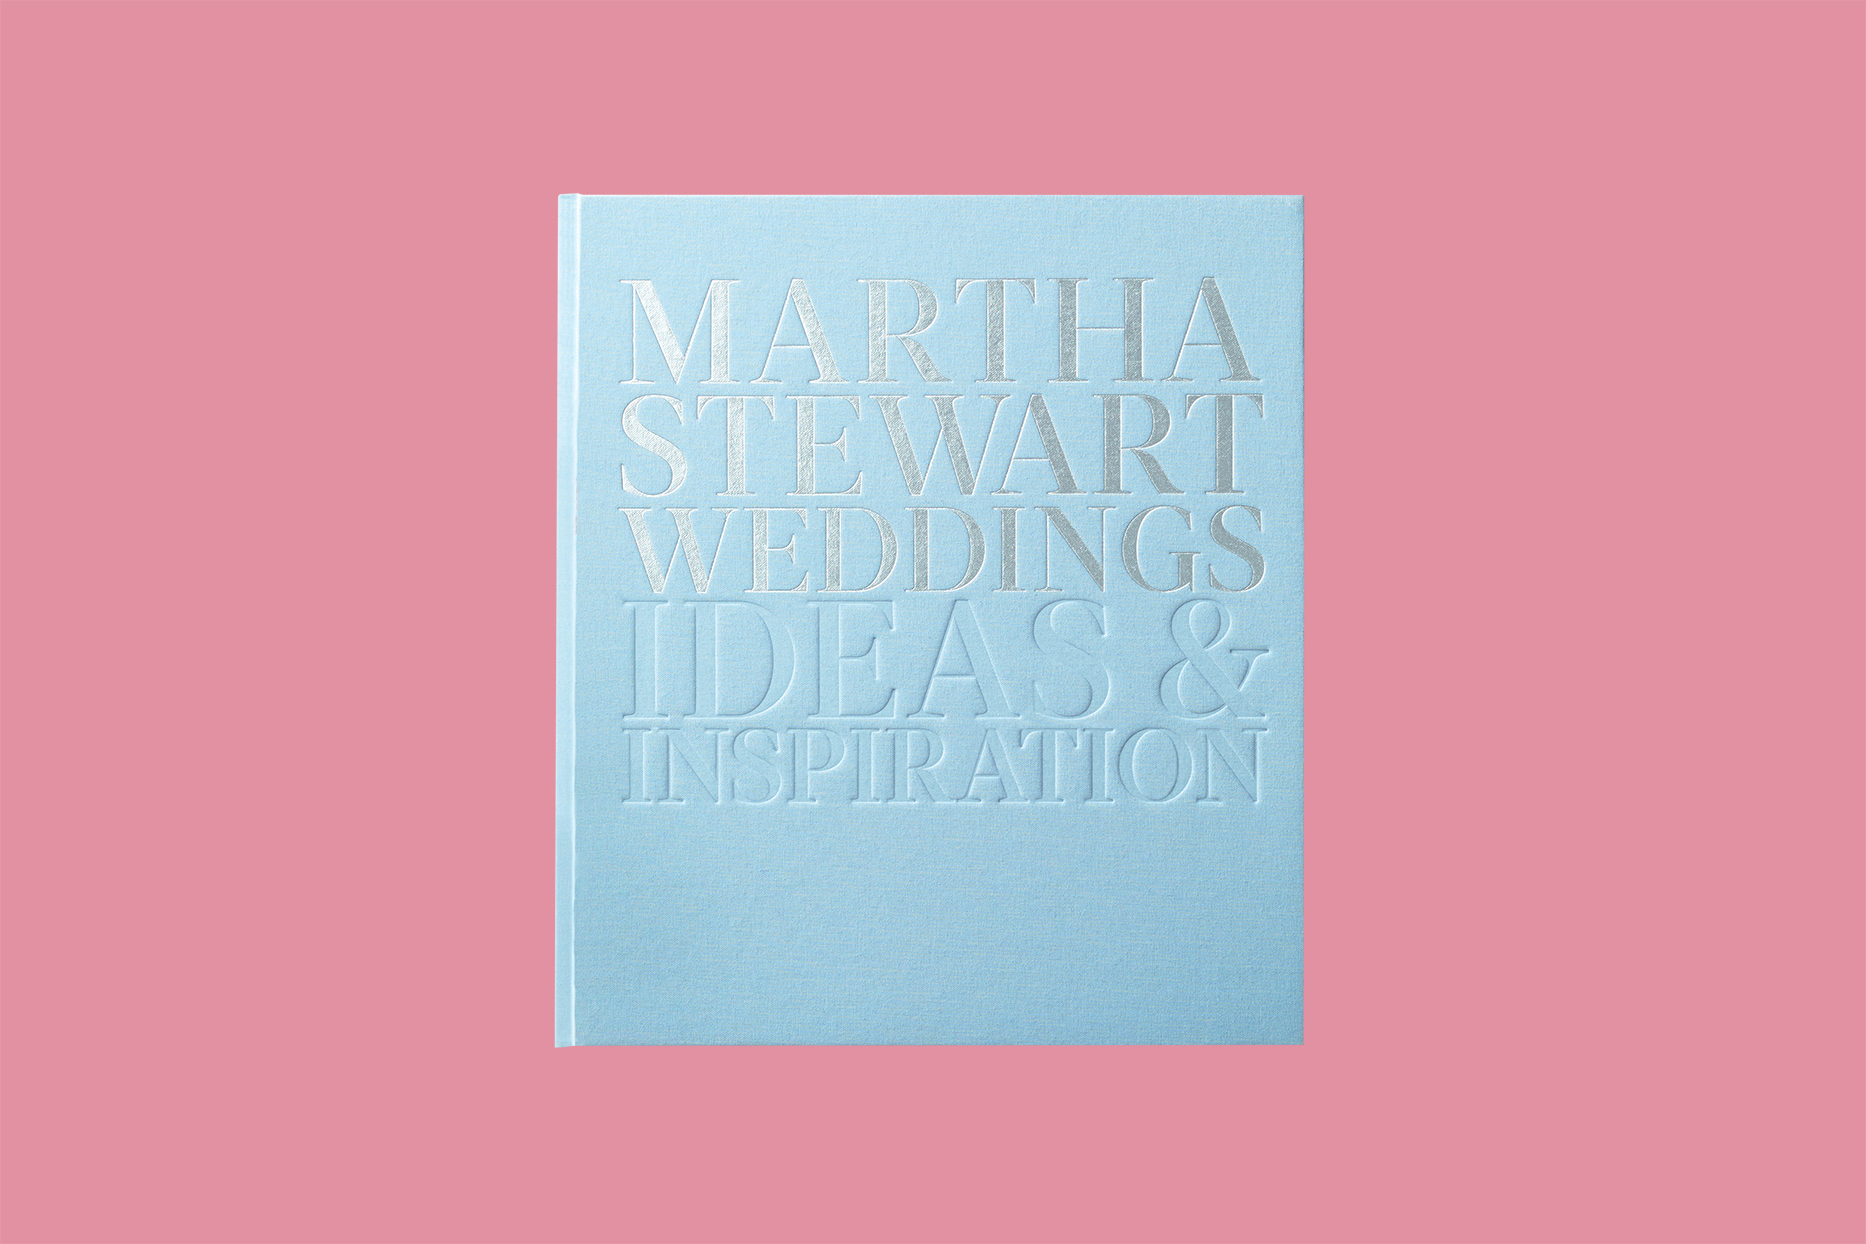 martha stewart weddings ideas and inspiration book